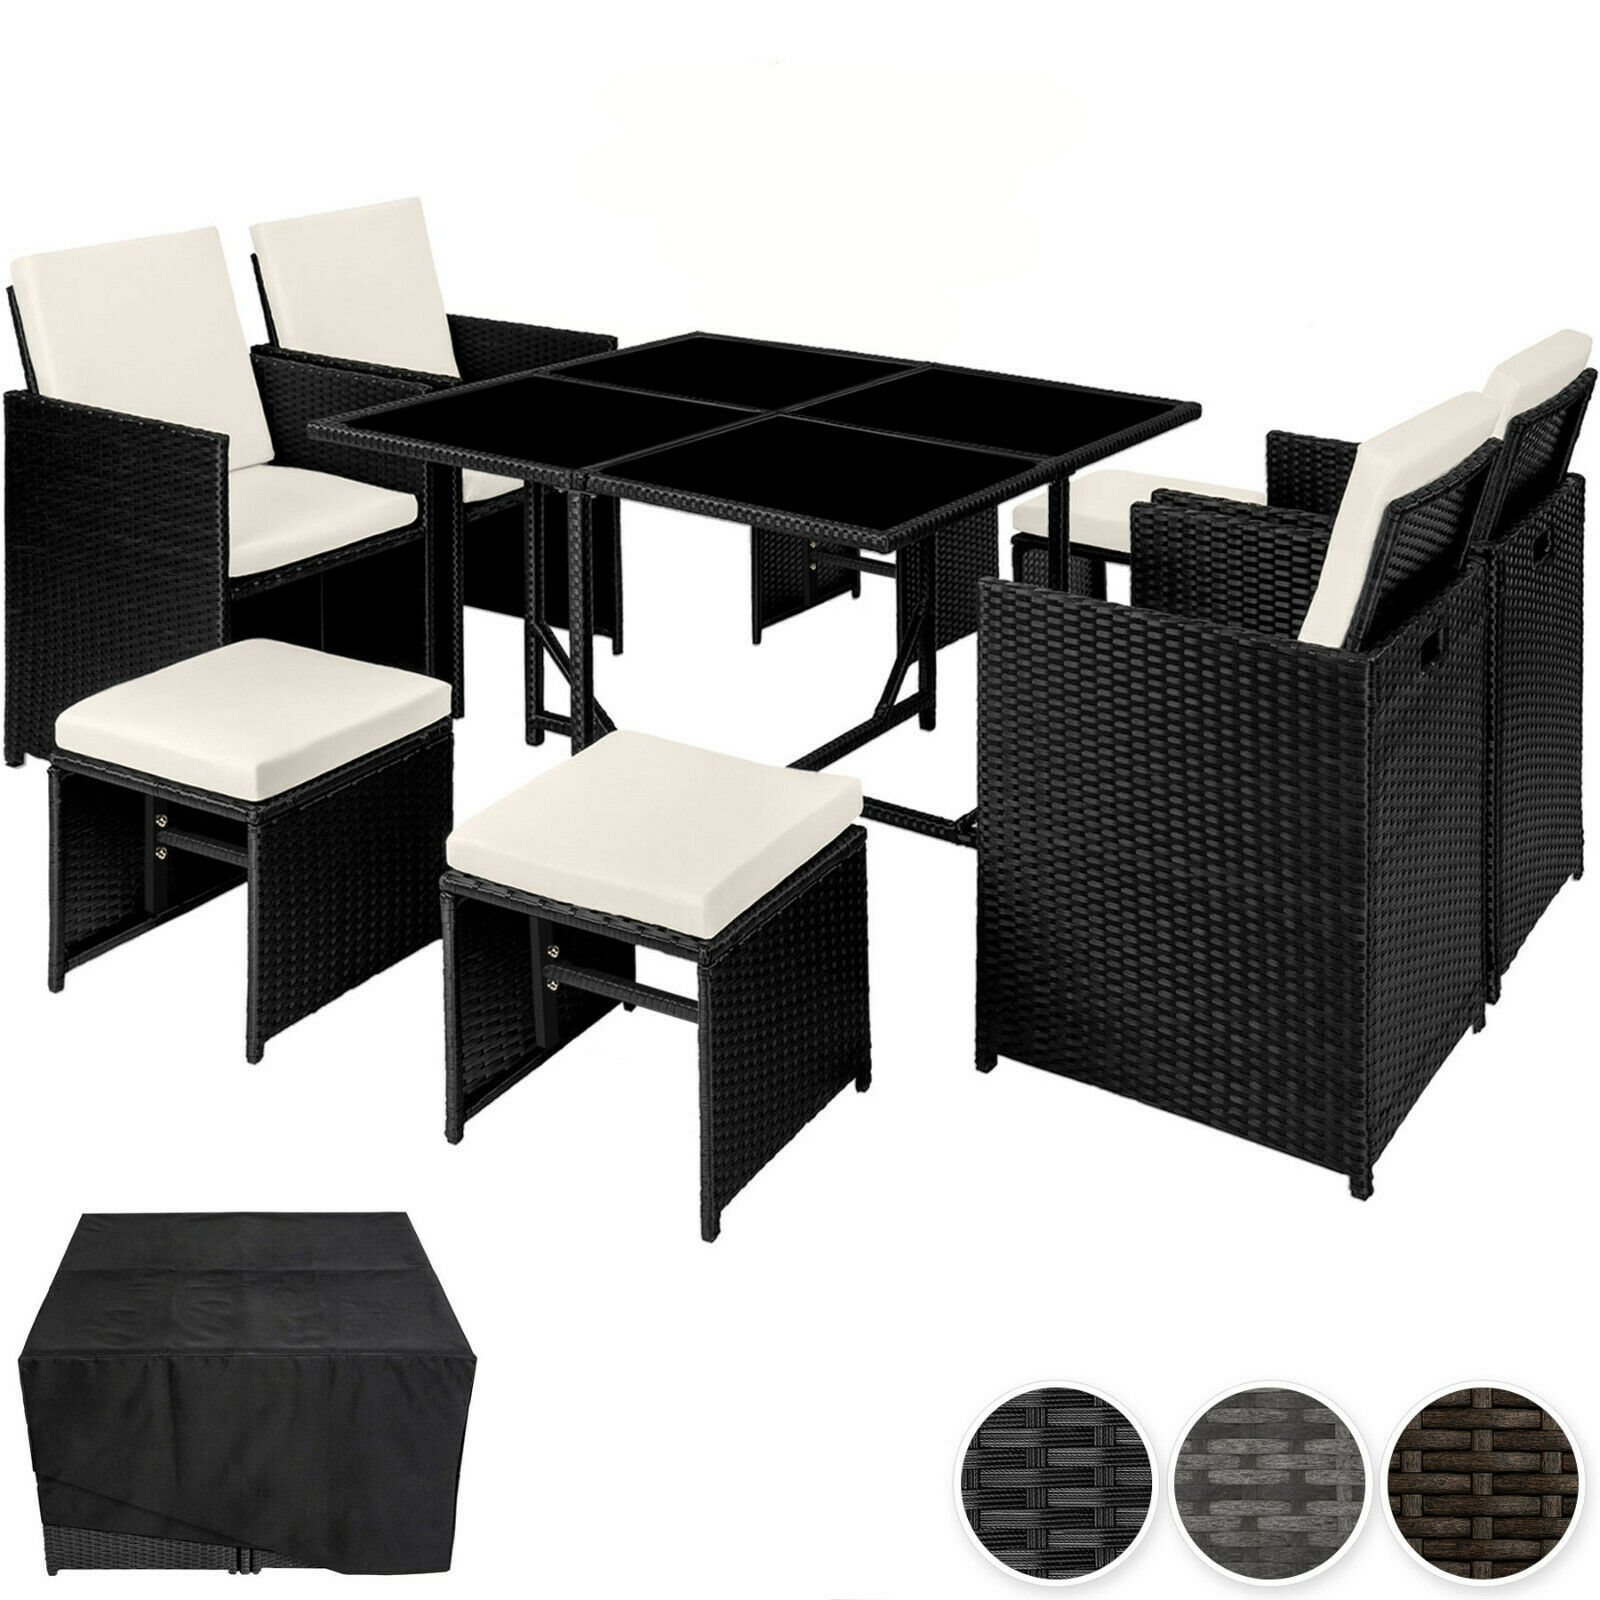 Garden Furniture - Rattan Garden Furniture Set Cube  Wicker 8 Seater Table Cushions Dining Set new